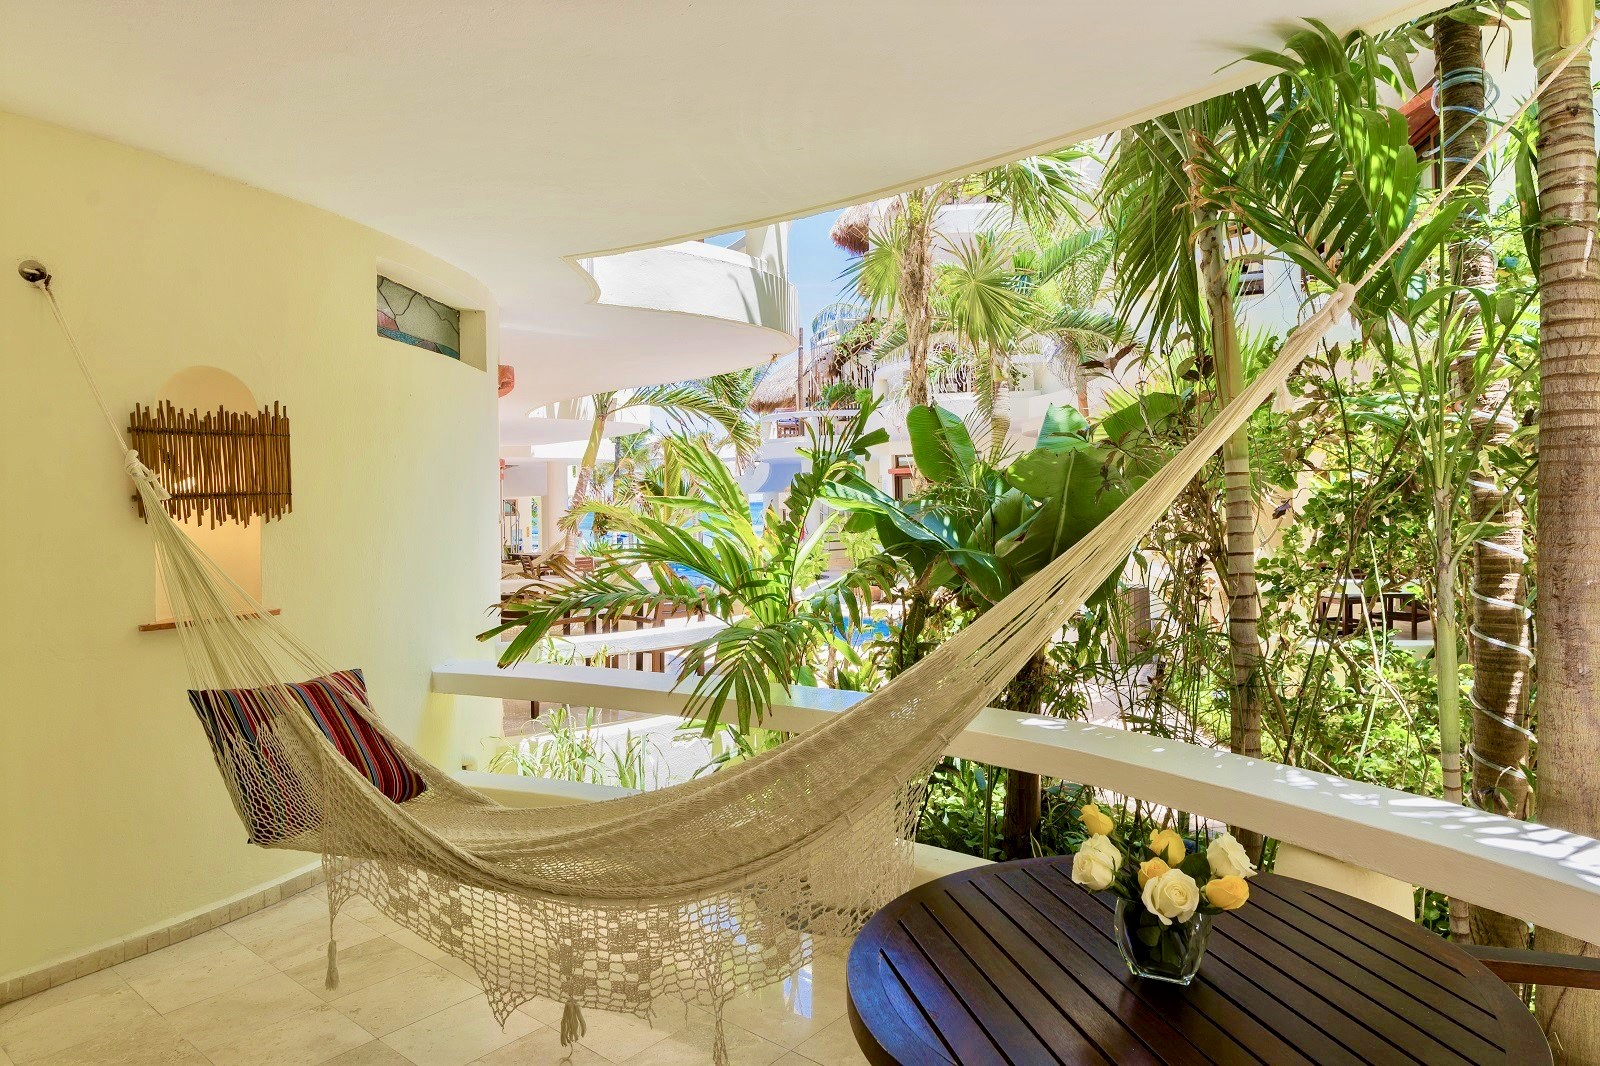 Relax on Your hammock.